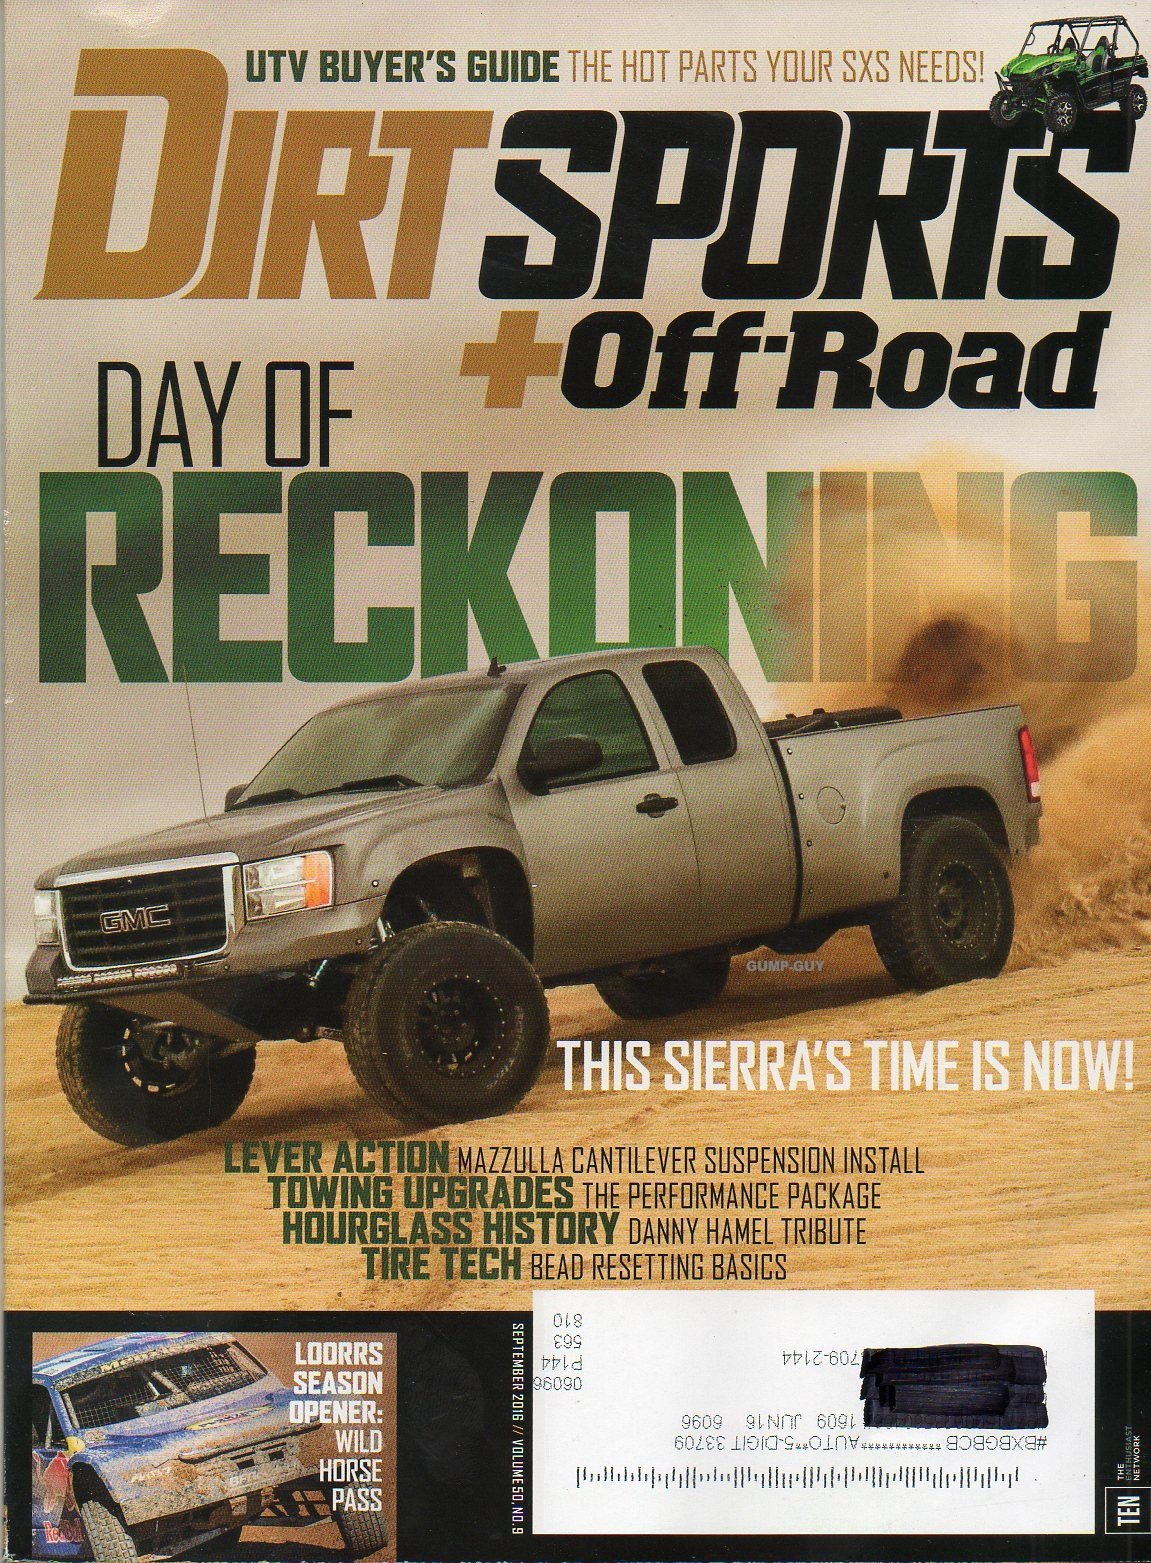 Read Online Dirt Sports+Off-Road Magazine September 2016 UTV BUYER'S GUIDE: THE HOT PARTS YOUR SXS NEEDS! Day Of Reckoning: This Sierra's Time Is Now PDF